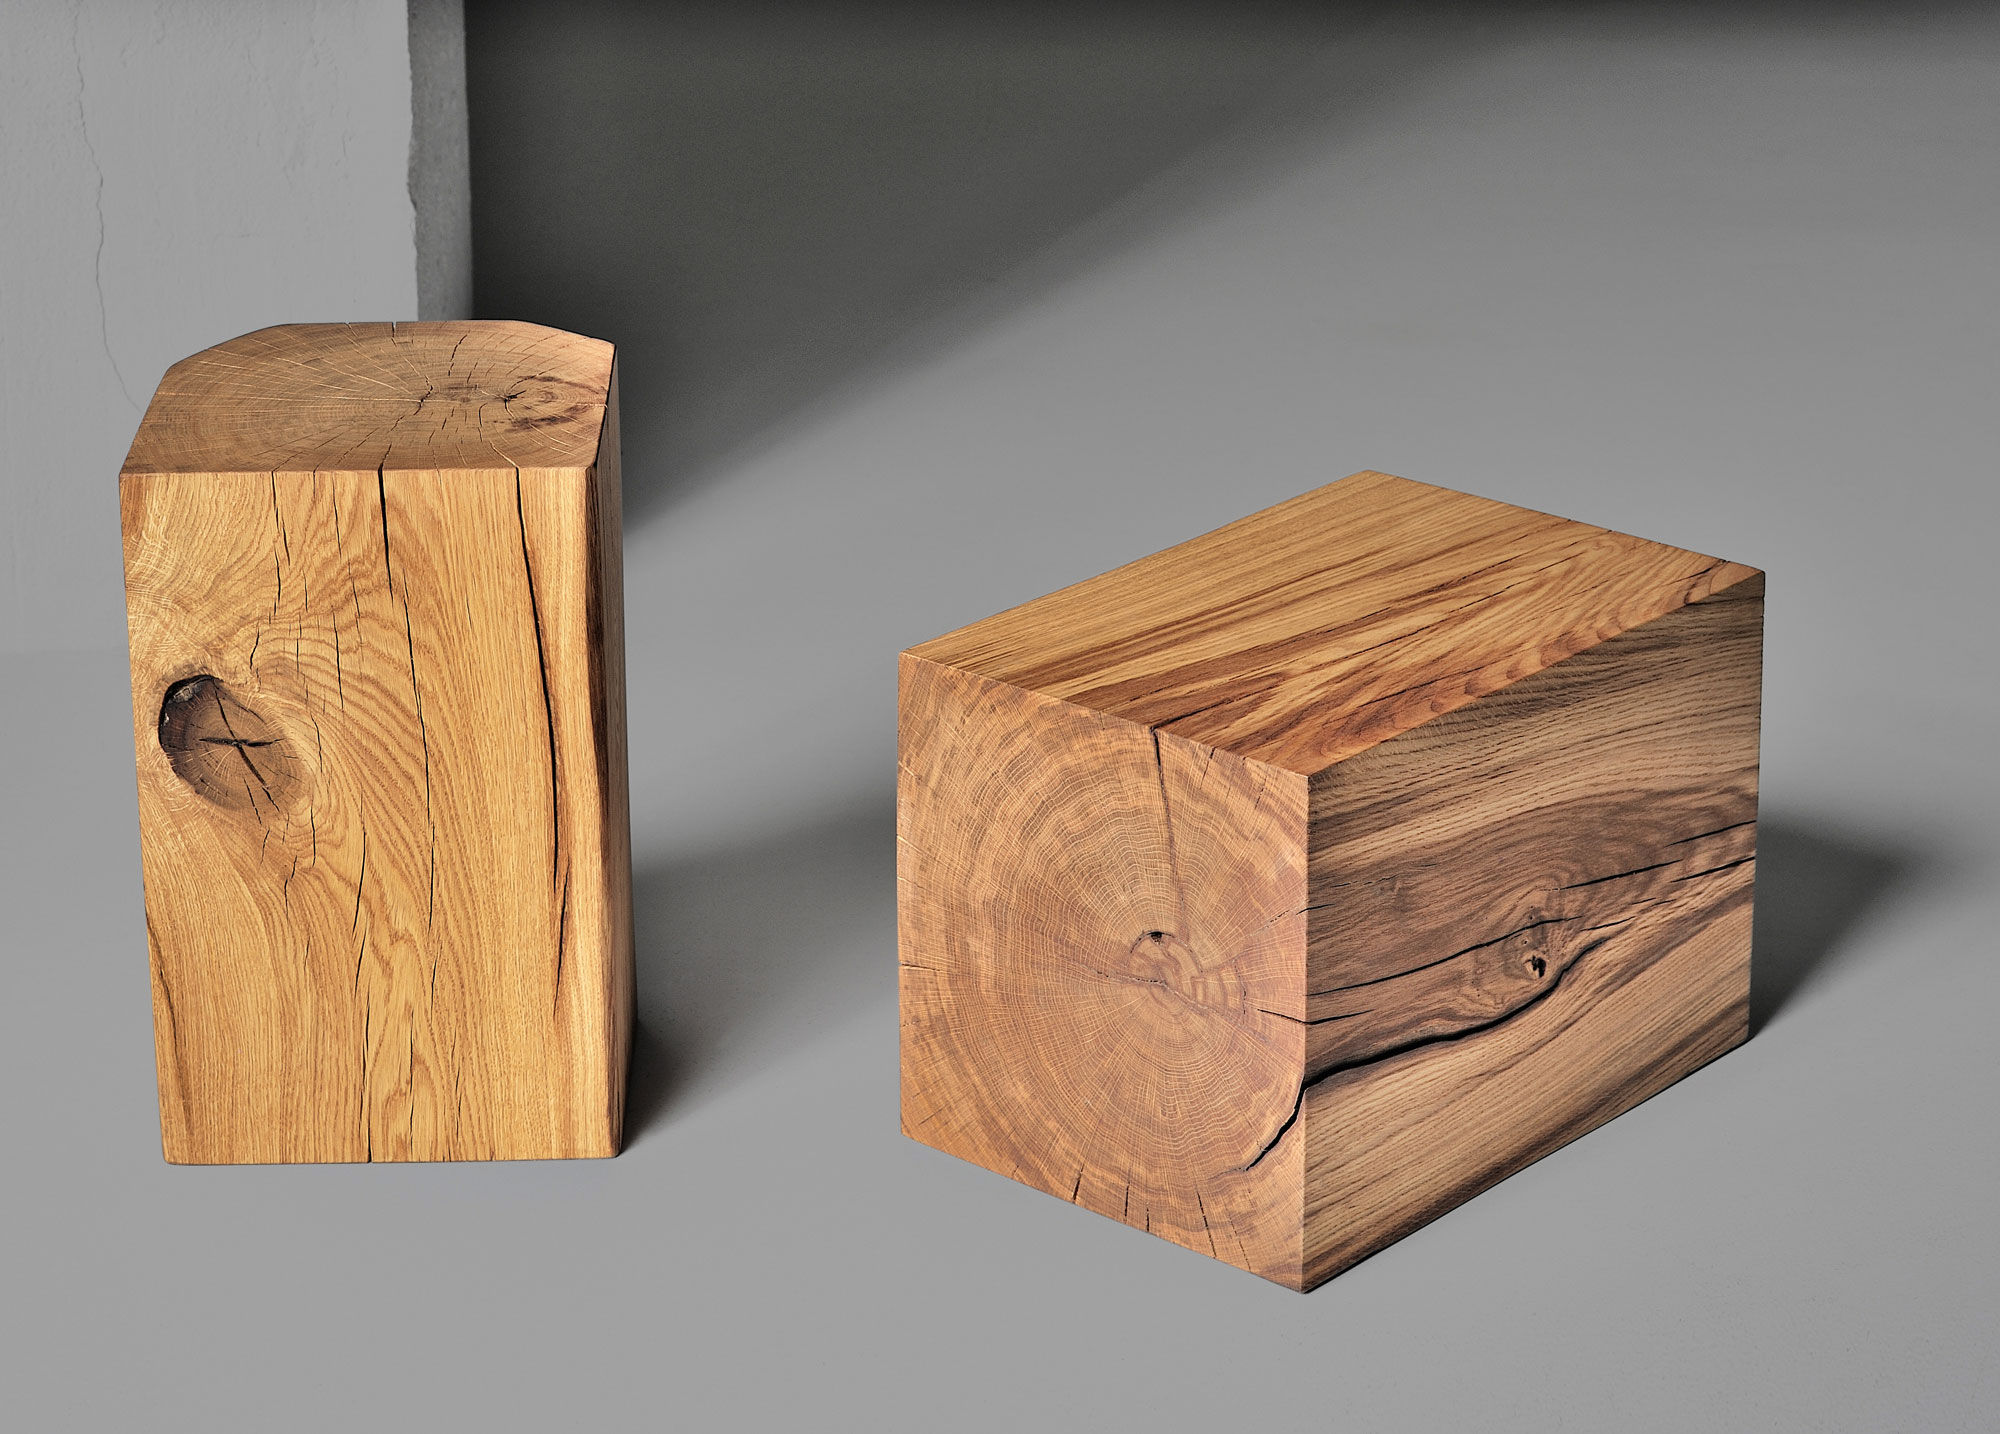 Tree Trunk Stool KLOTZ 2838 custom made in solid wood by vitamin design